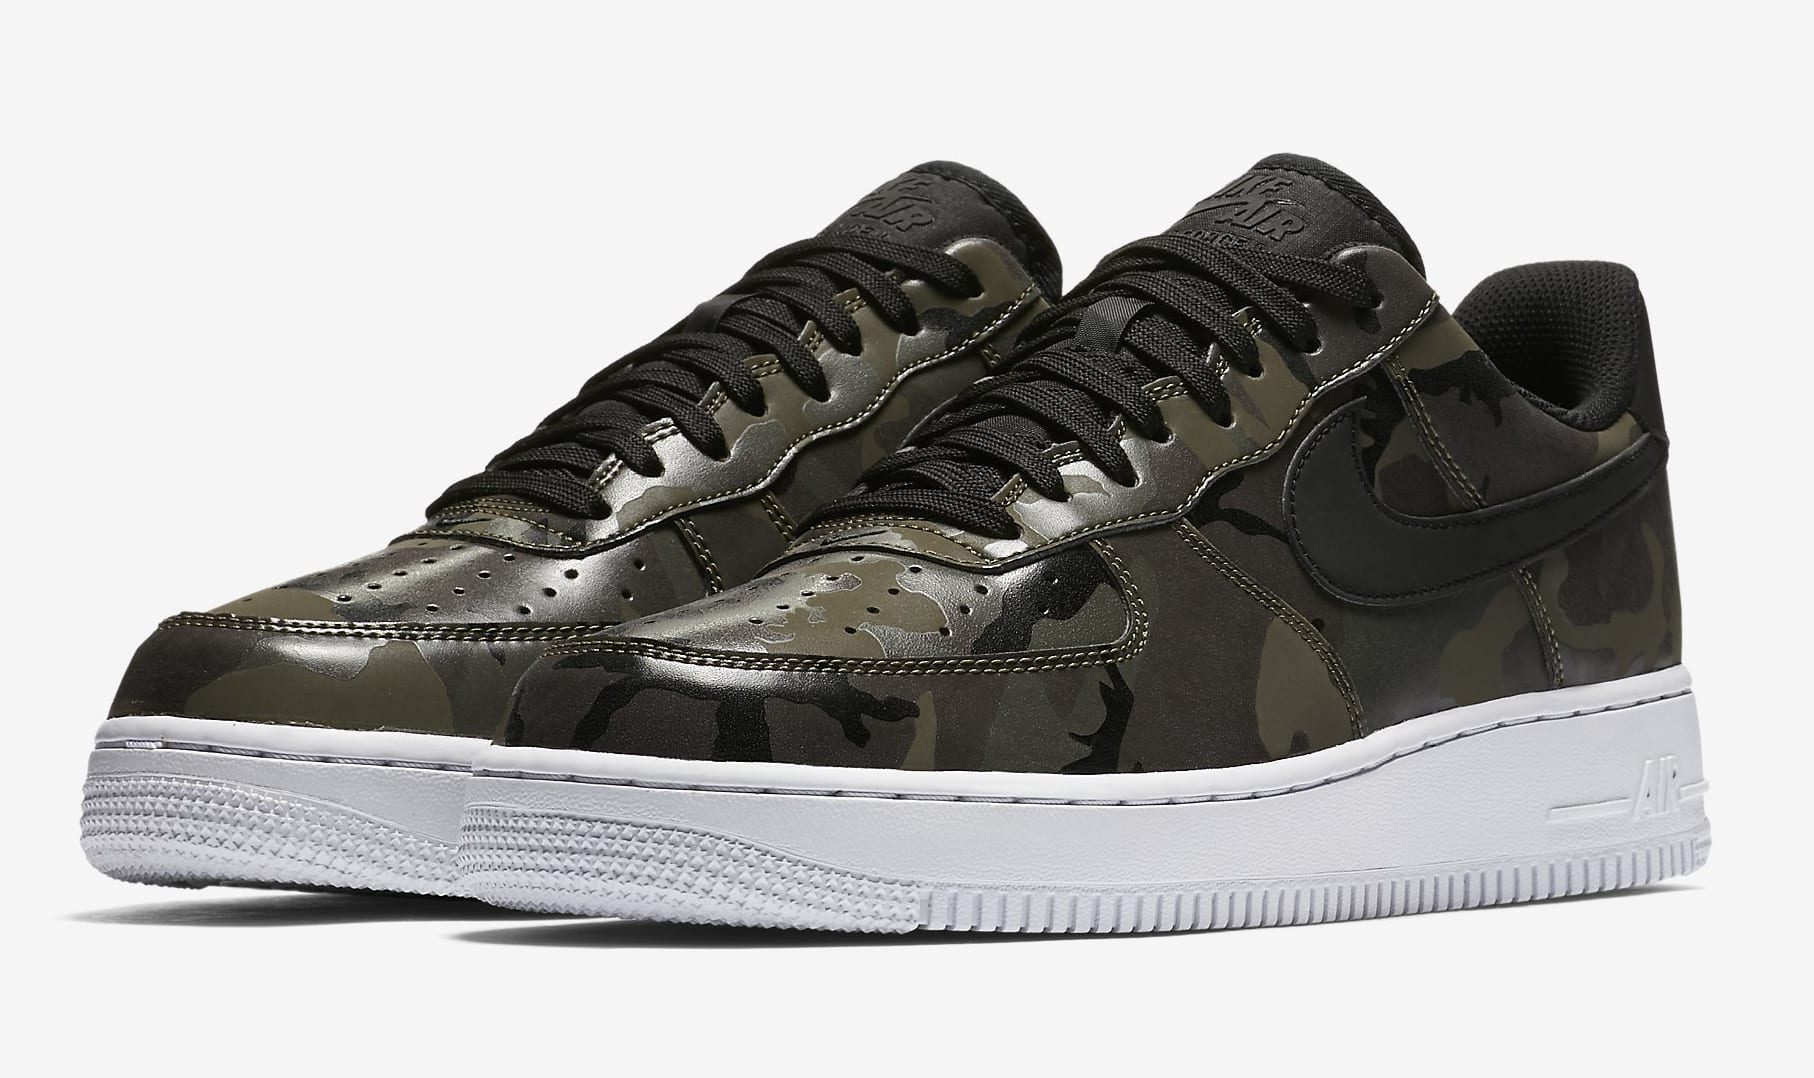 Nike Air Force 1 Low 'Country Camo' 823511-201 (Pair)